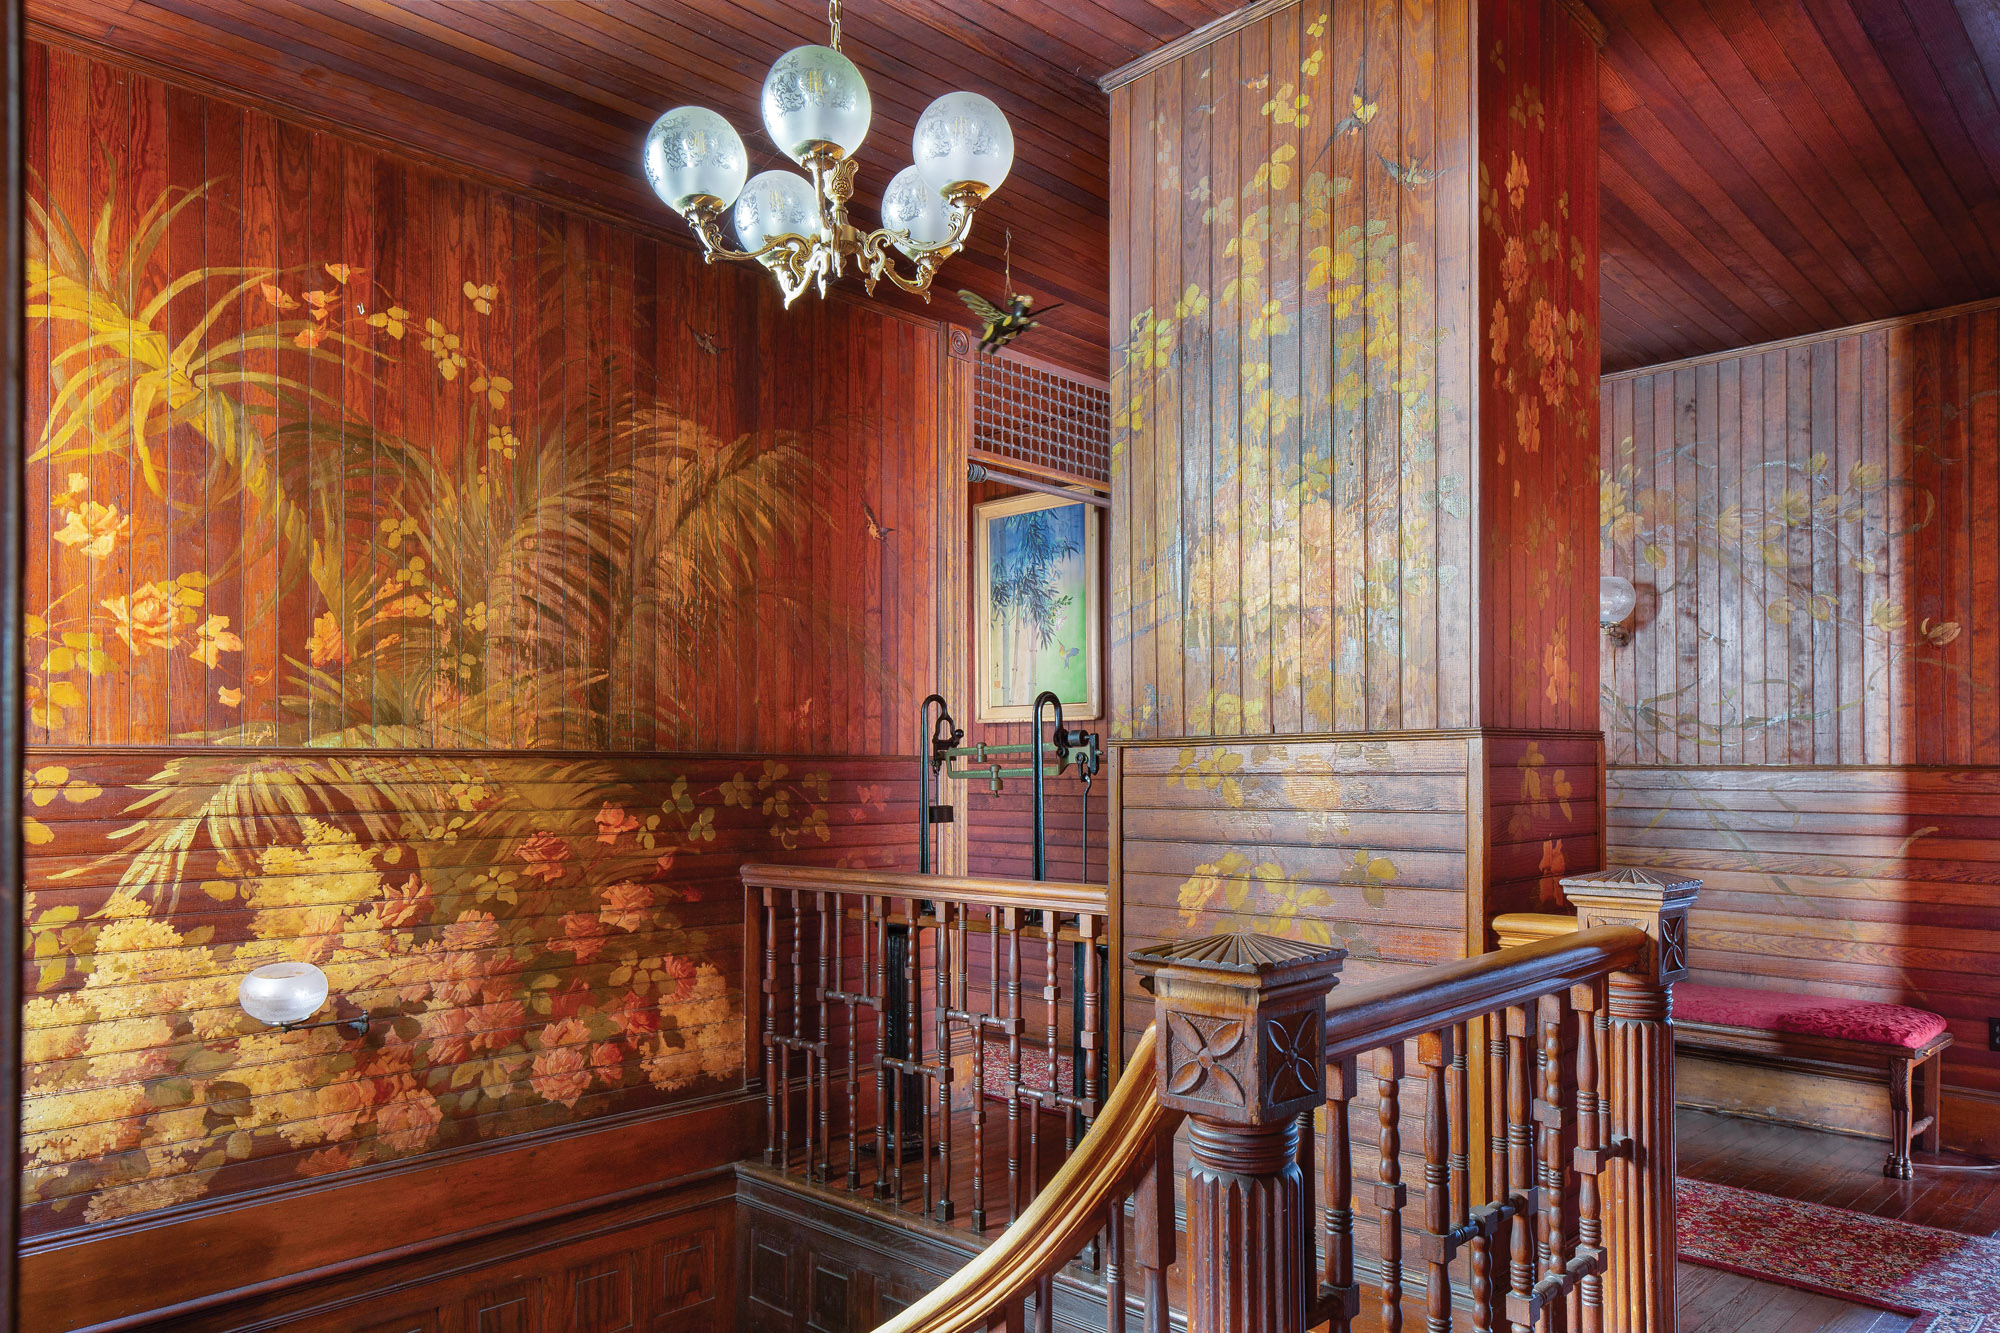 The artistic talents of nameless  artists of the late-19th century  are in full flower at the top of  the stairs, which lead to guest rooms.